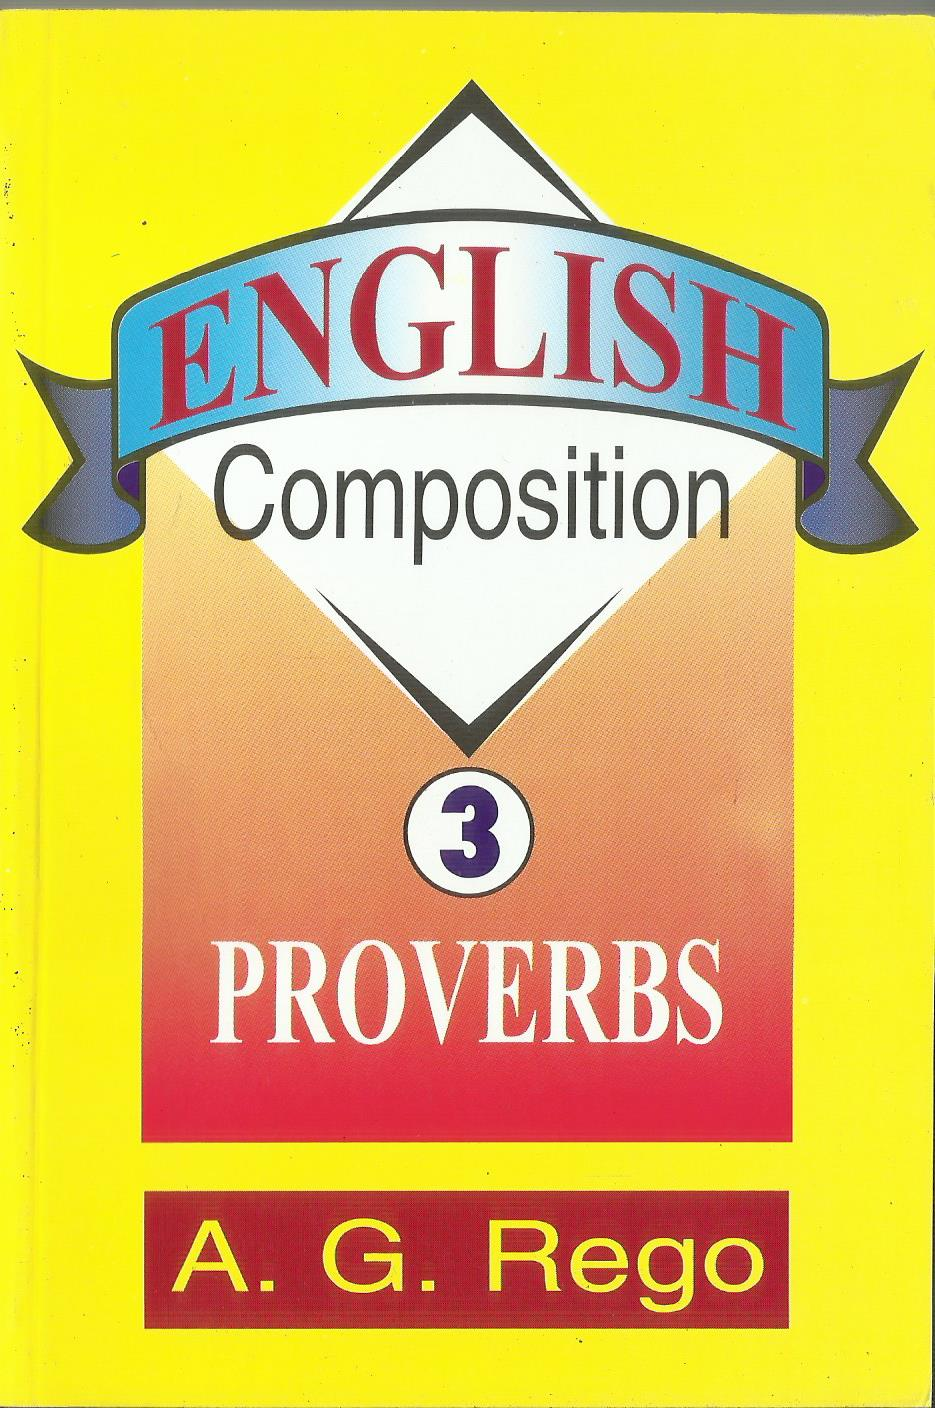 ENGLISH COMPOSITION 3 PROVERBS - sophiabuy